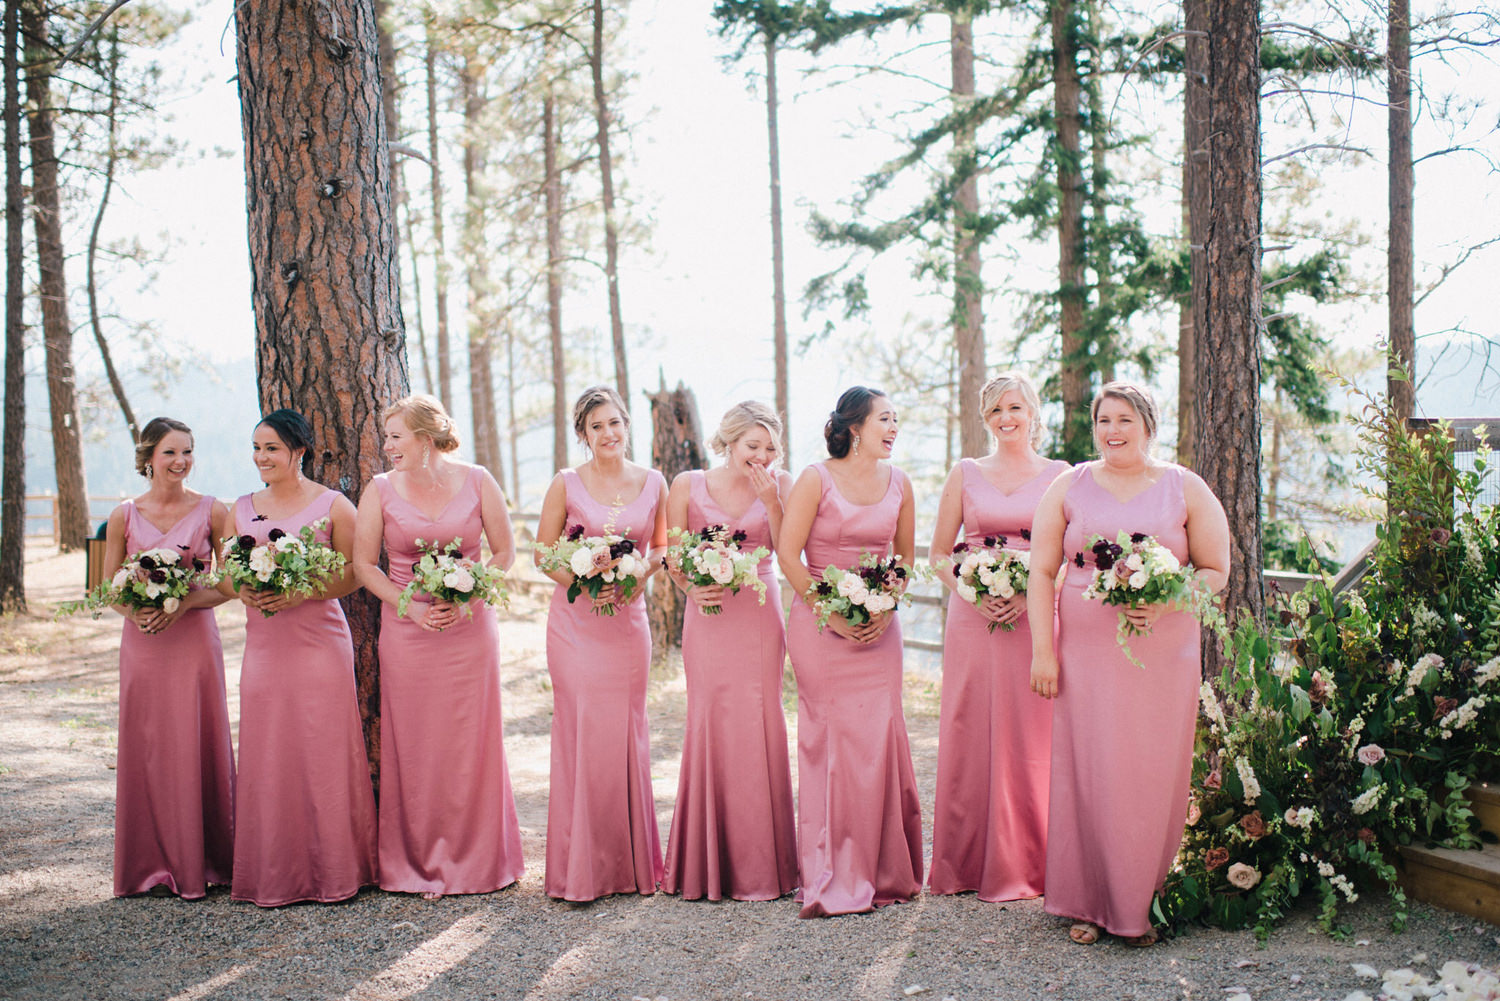 267-bright-coral-wedding-with-sinclair-and-moore-at-suncadia-resort.jpg